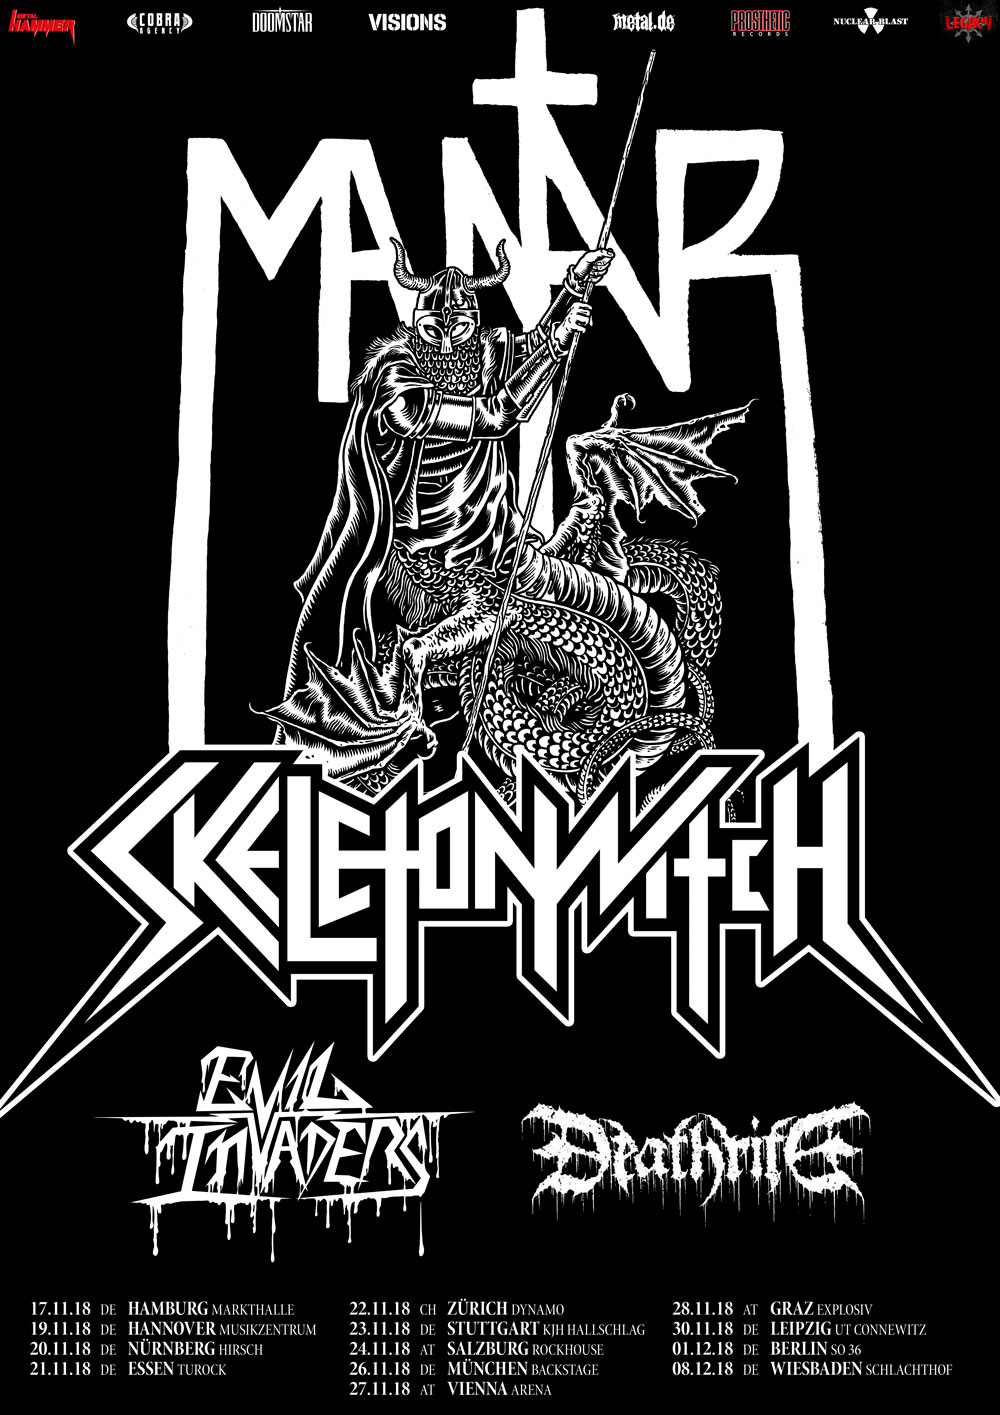 MANTAR & SKELETONWITCH